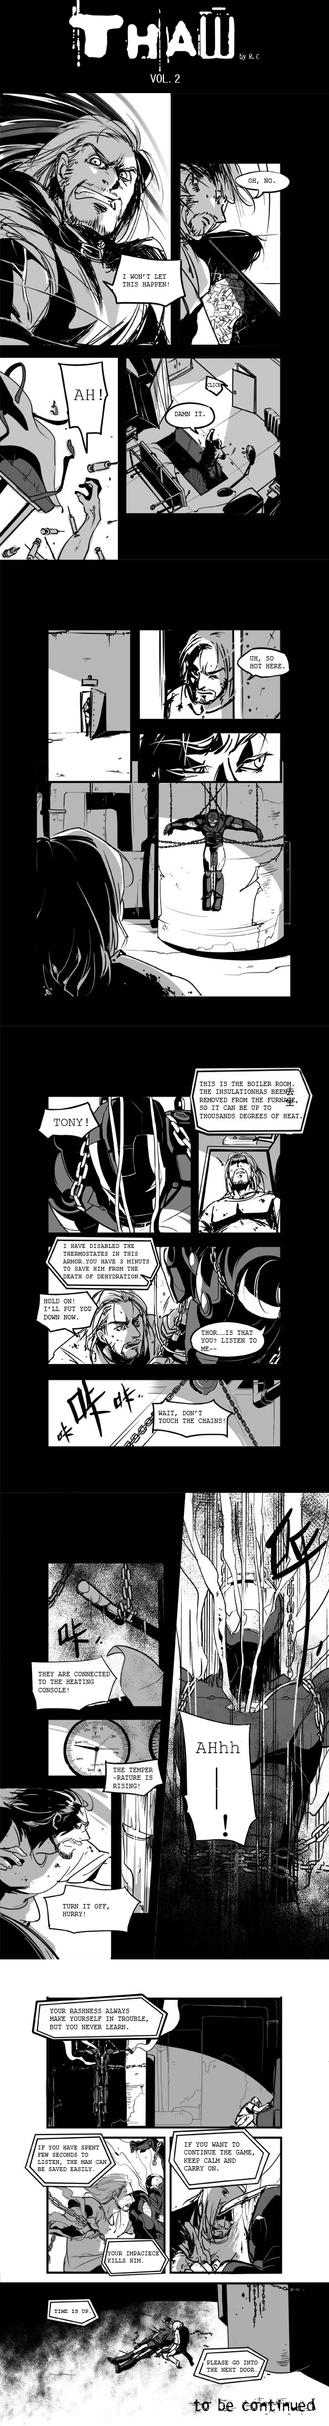 THAW Chap2 by Rcaptain